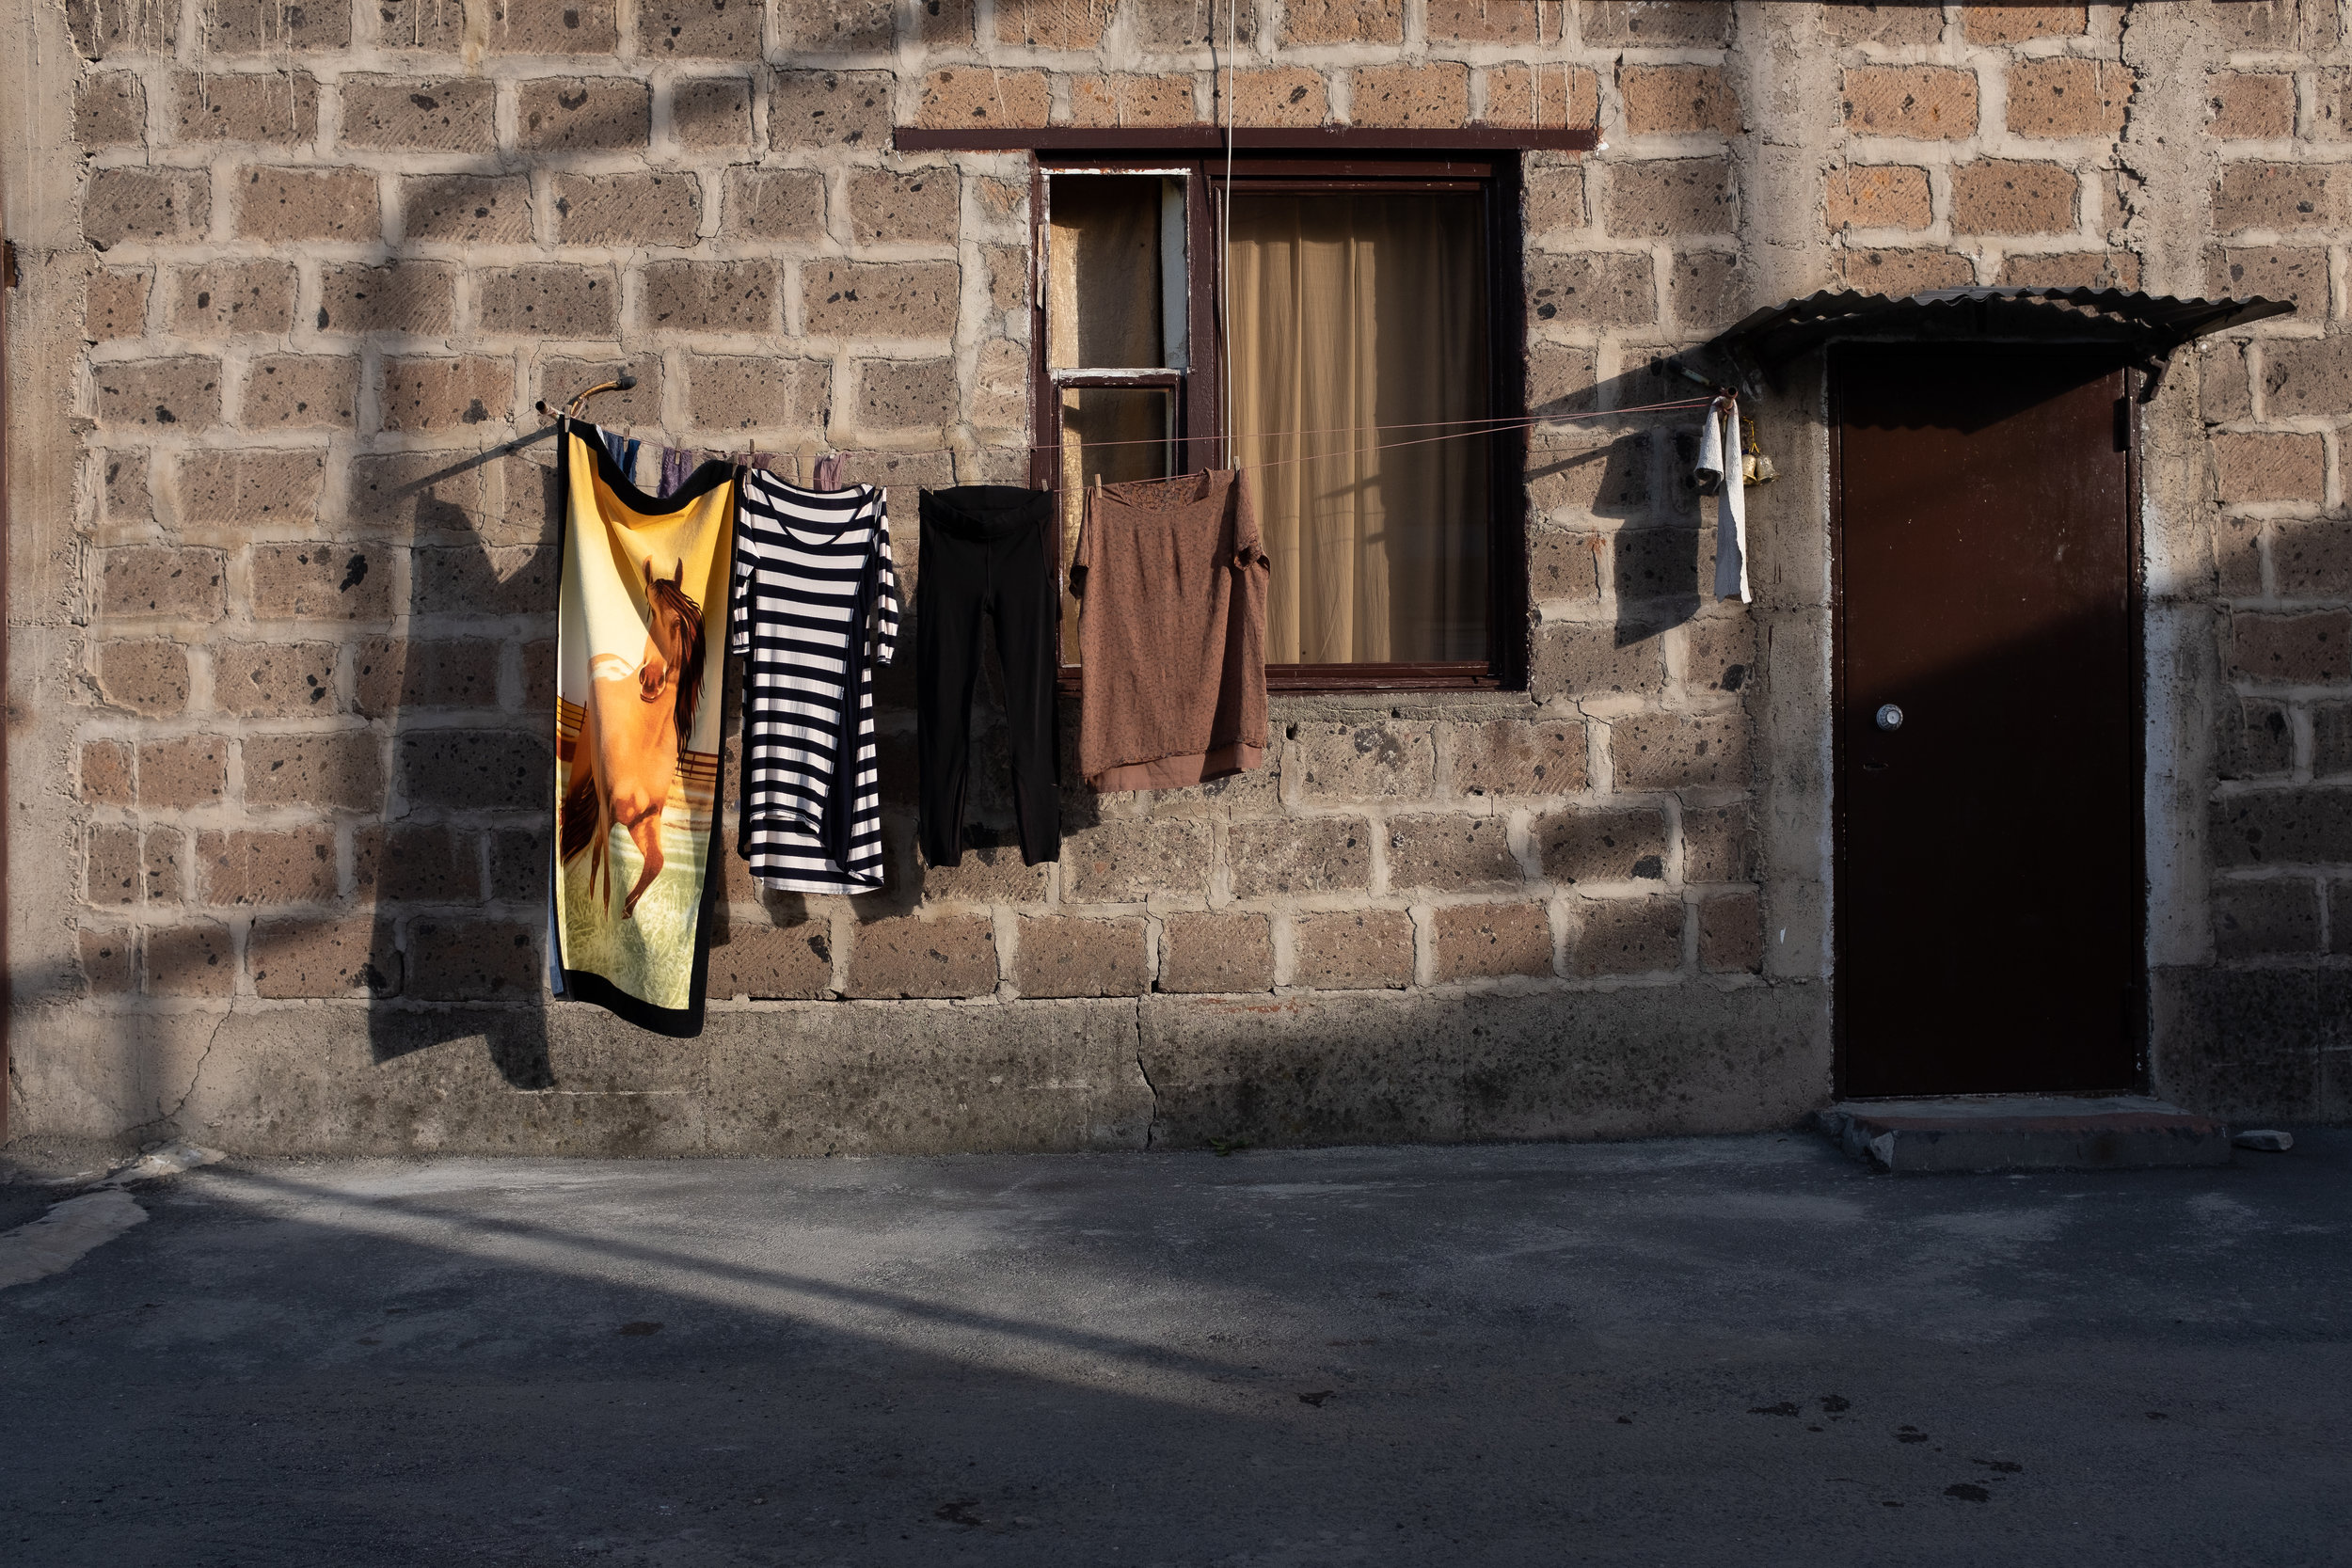 One of the most common sights throughout Armenia, linens hanging to dry during a cool spring evening.